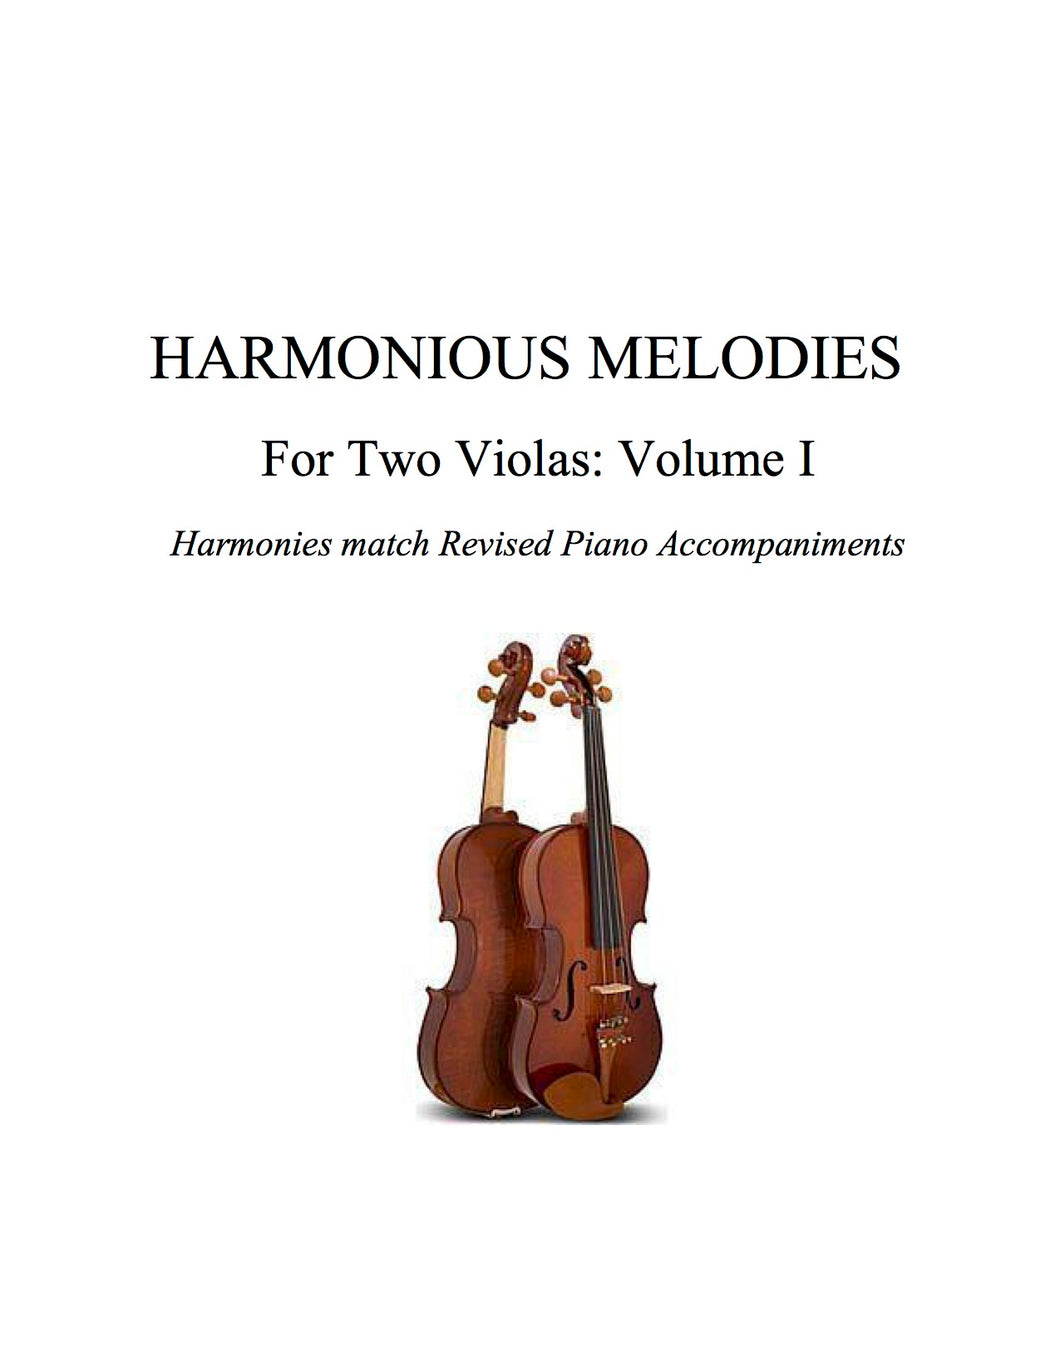 018 BUNDLE - Harmonious Melodies For Two Violas, Volume I (Suzuki 1B, 2 & 3)